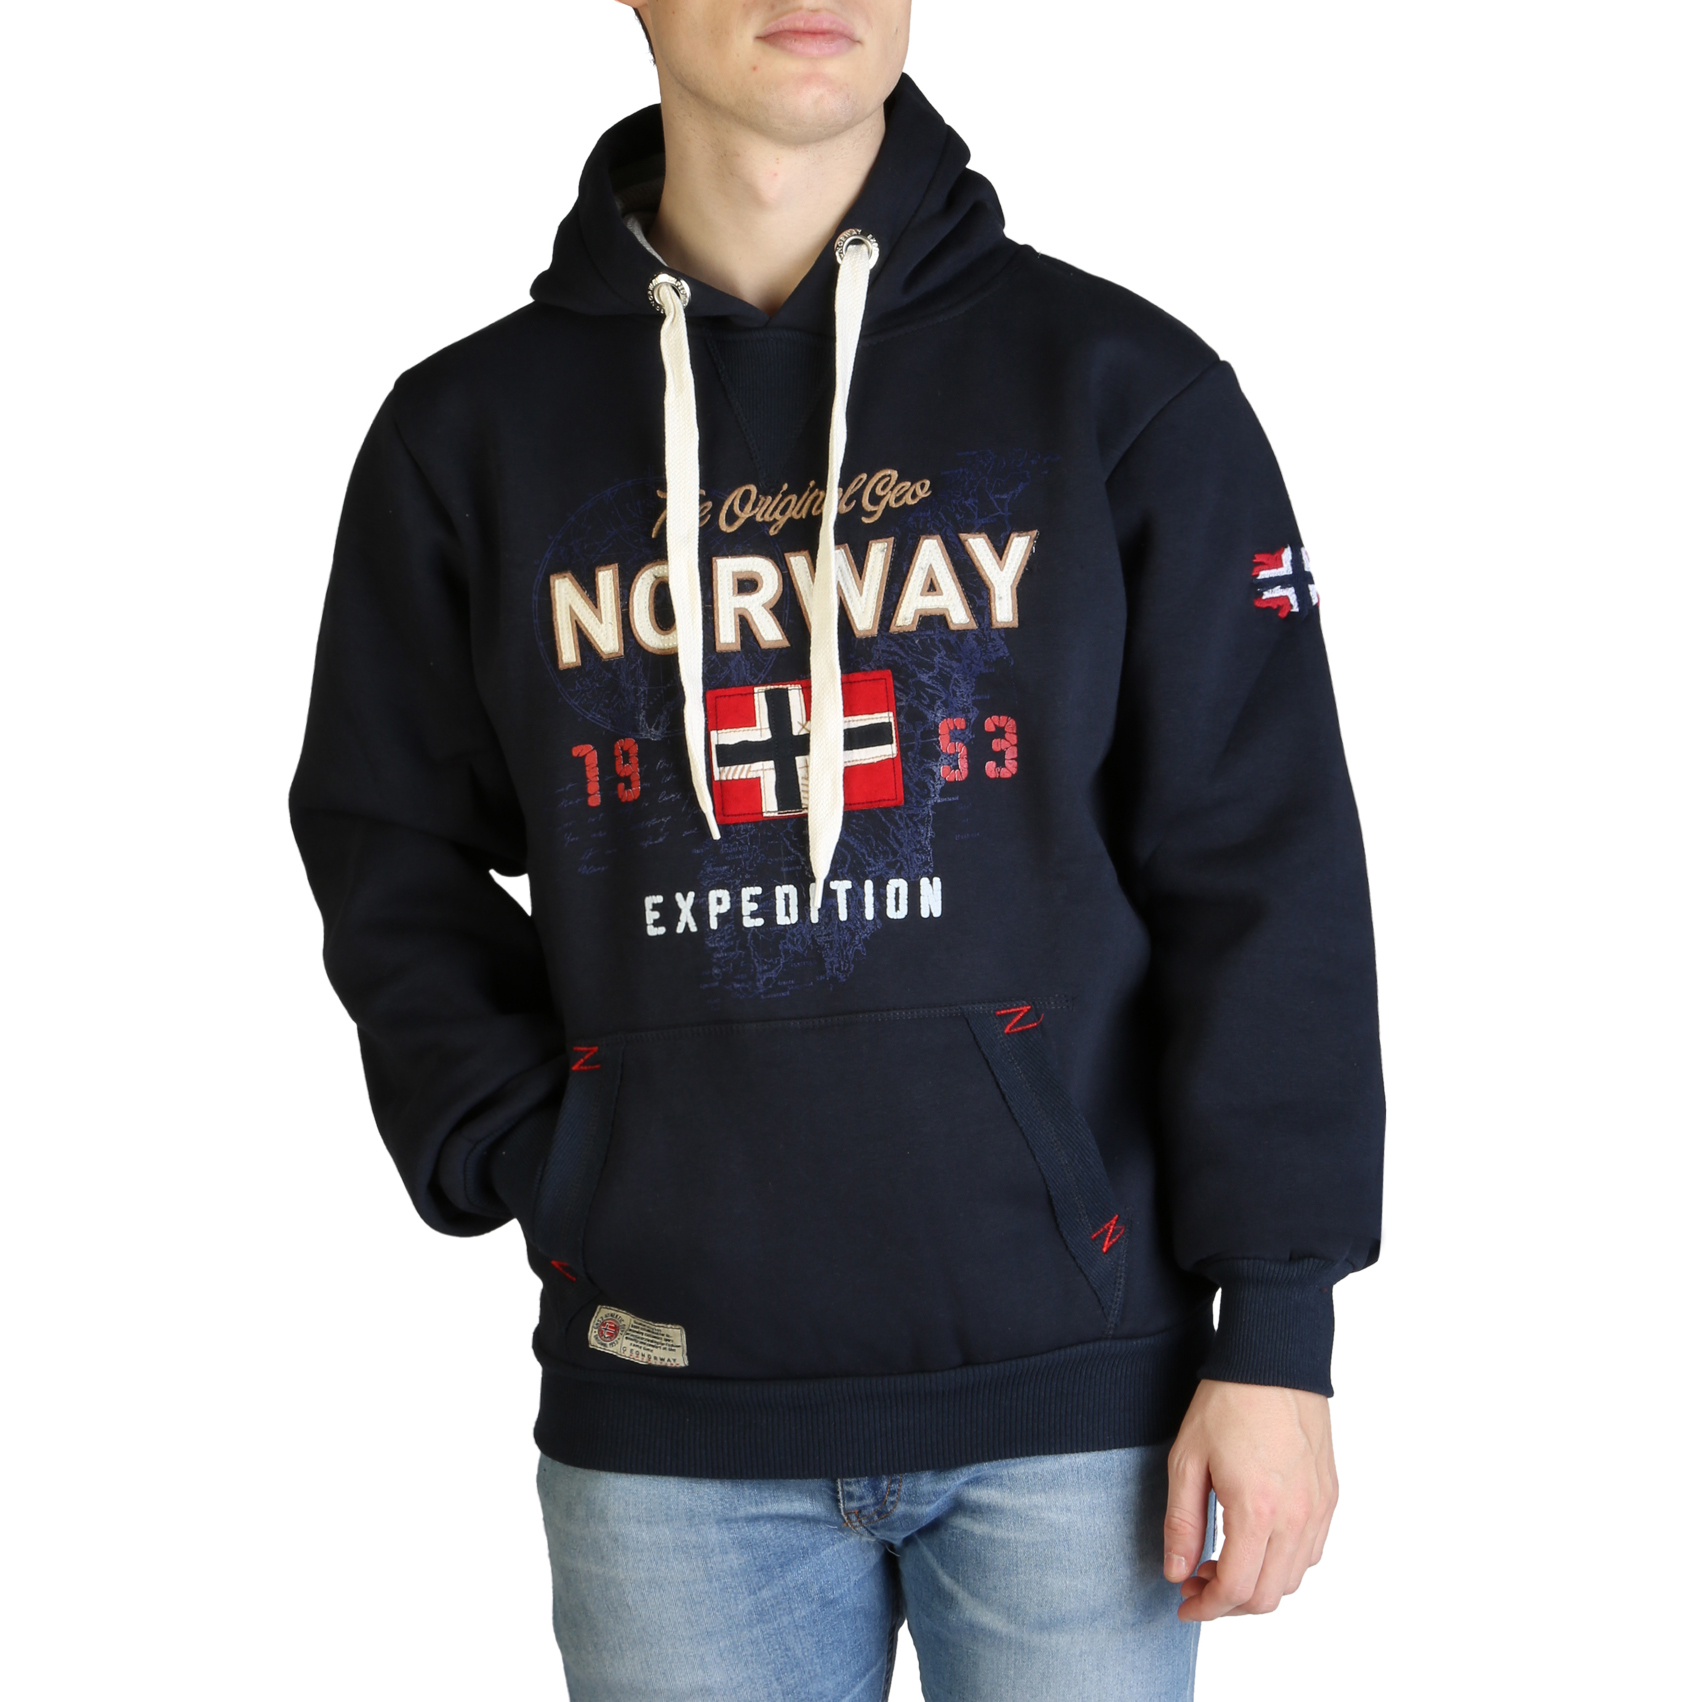 Geographical Norway Guitre100 man